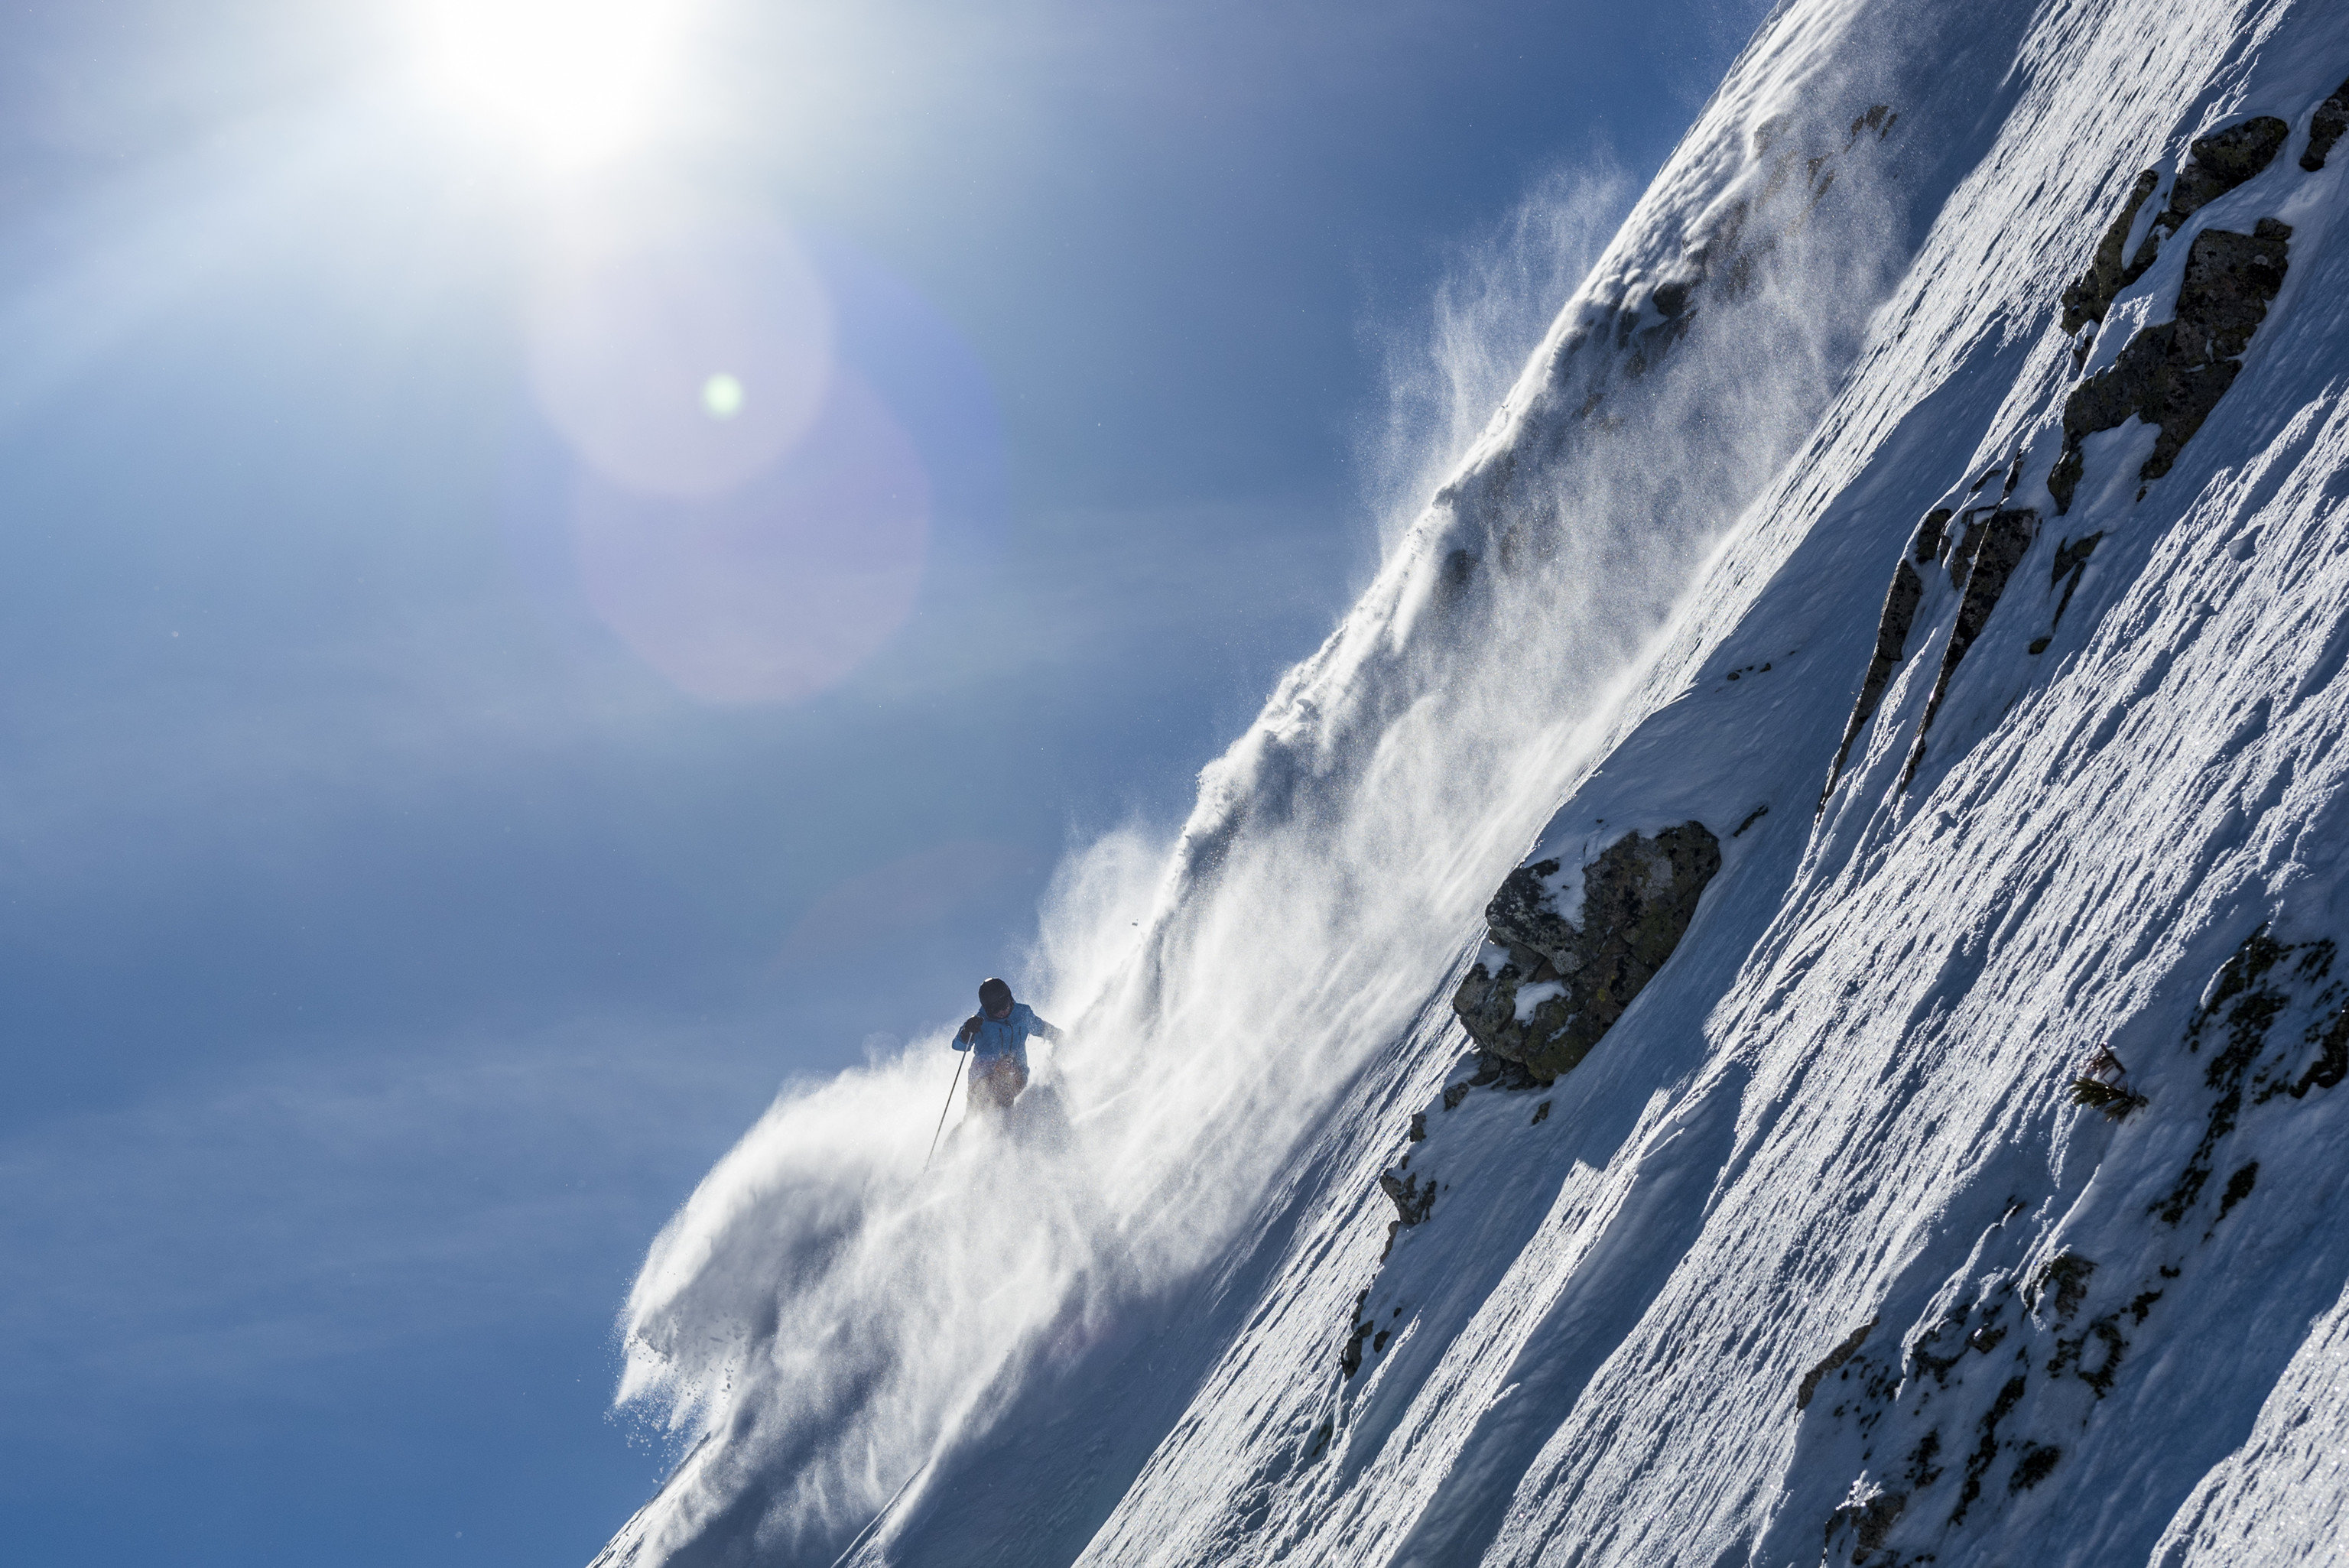 Hotels Luxury Travel Mountains + Skiing outdoor snow Nature mountain skiing slope geological phenomenon hill mountain range covered atmosphere of earth ice sports Ski winter sport ski equipment extreme sport ski mountaineering ski touring alps sports equipment mountaineering hillside